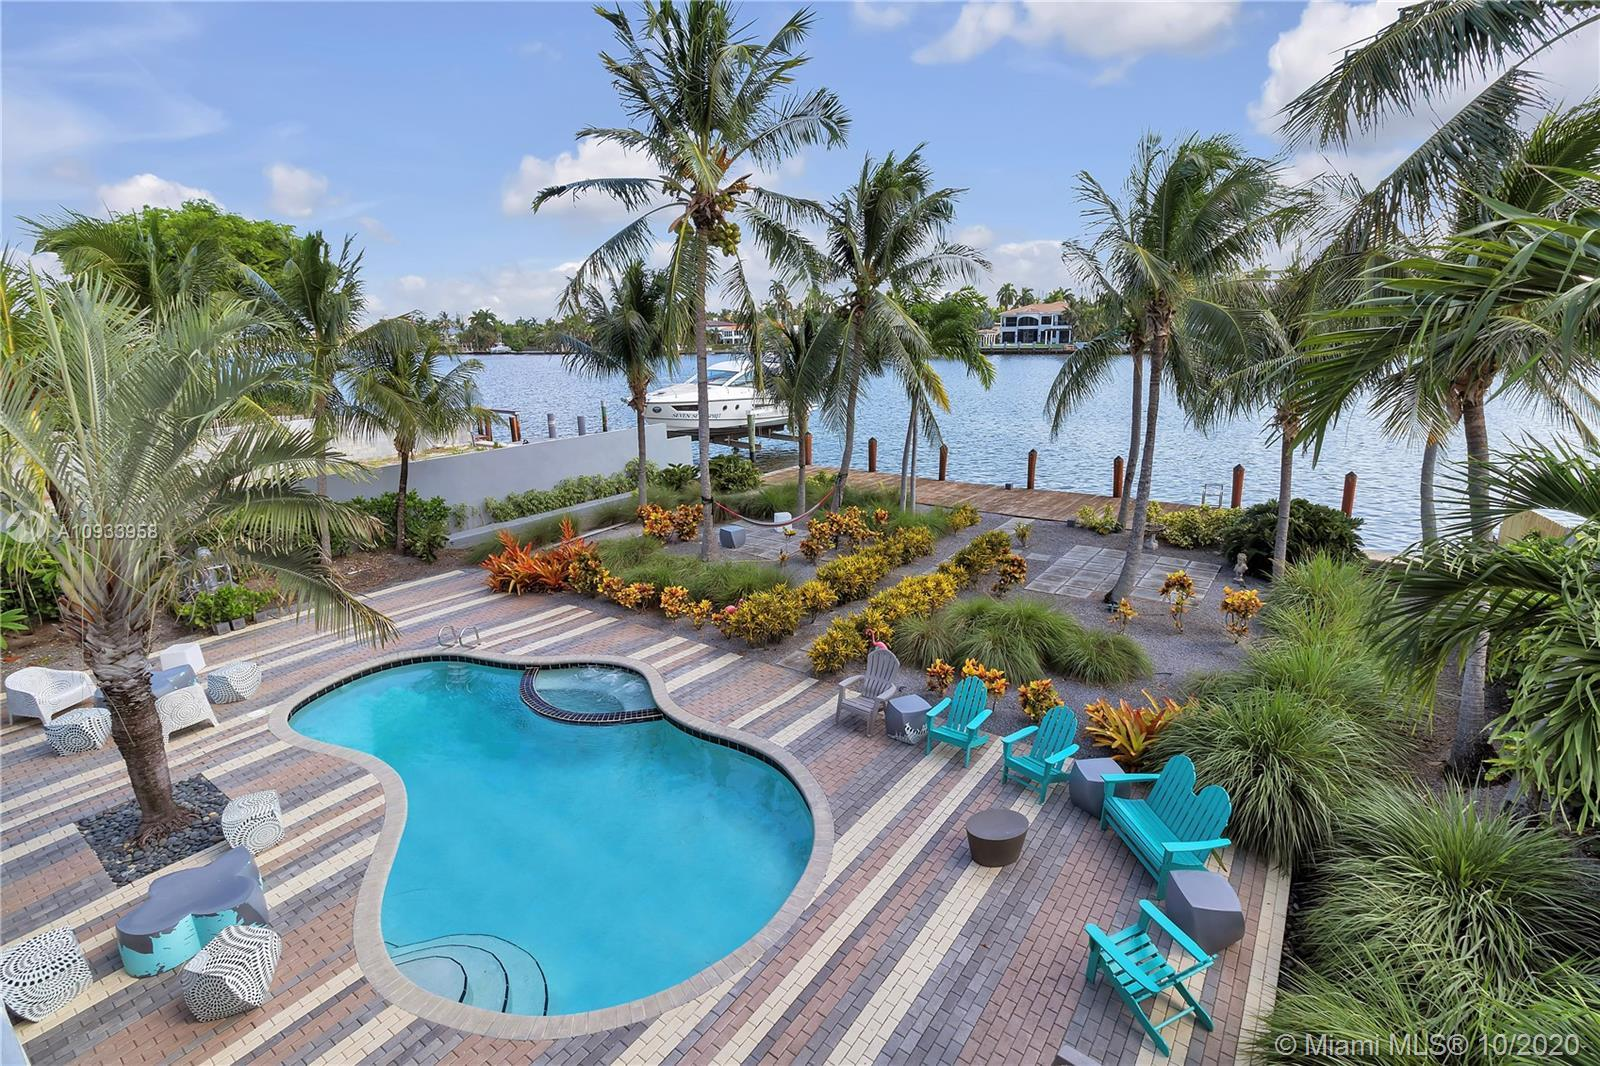 Gracious living in one of South Florida's most desirable neighborhoods, Hollywood Lake Sec. This 5 b